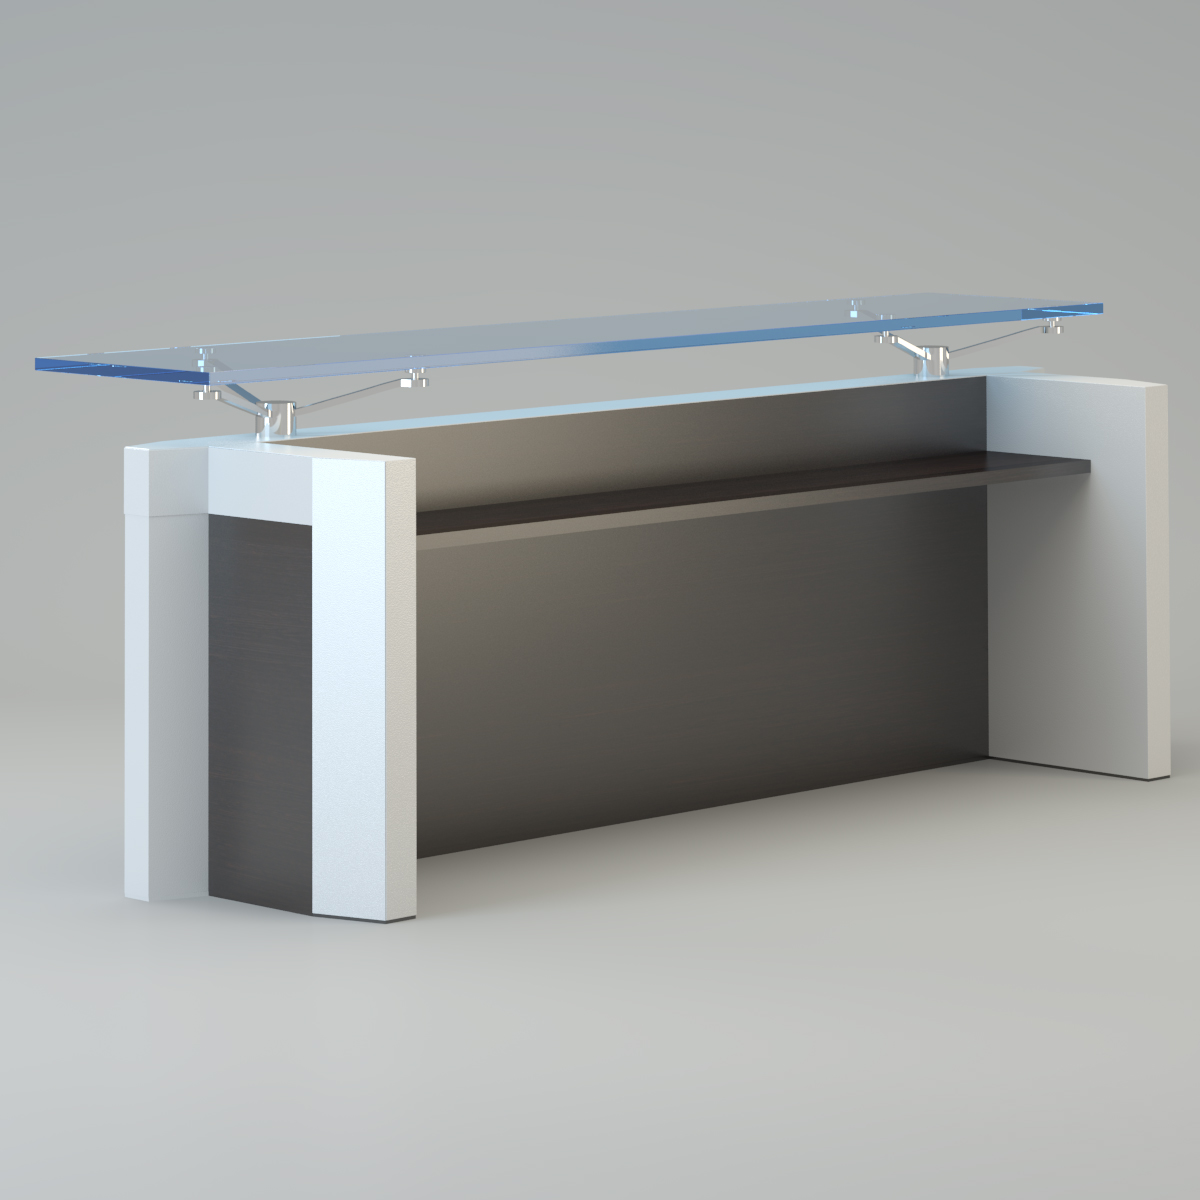 Contemporary reception desk free 3D Model .max - CGTrader.com